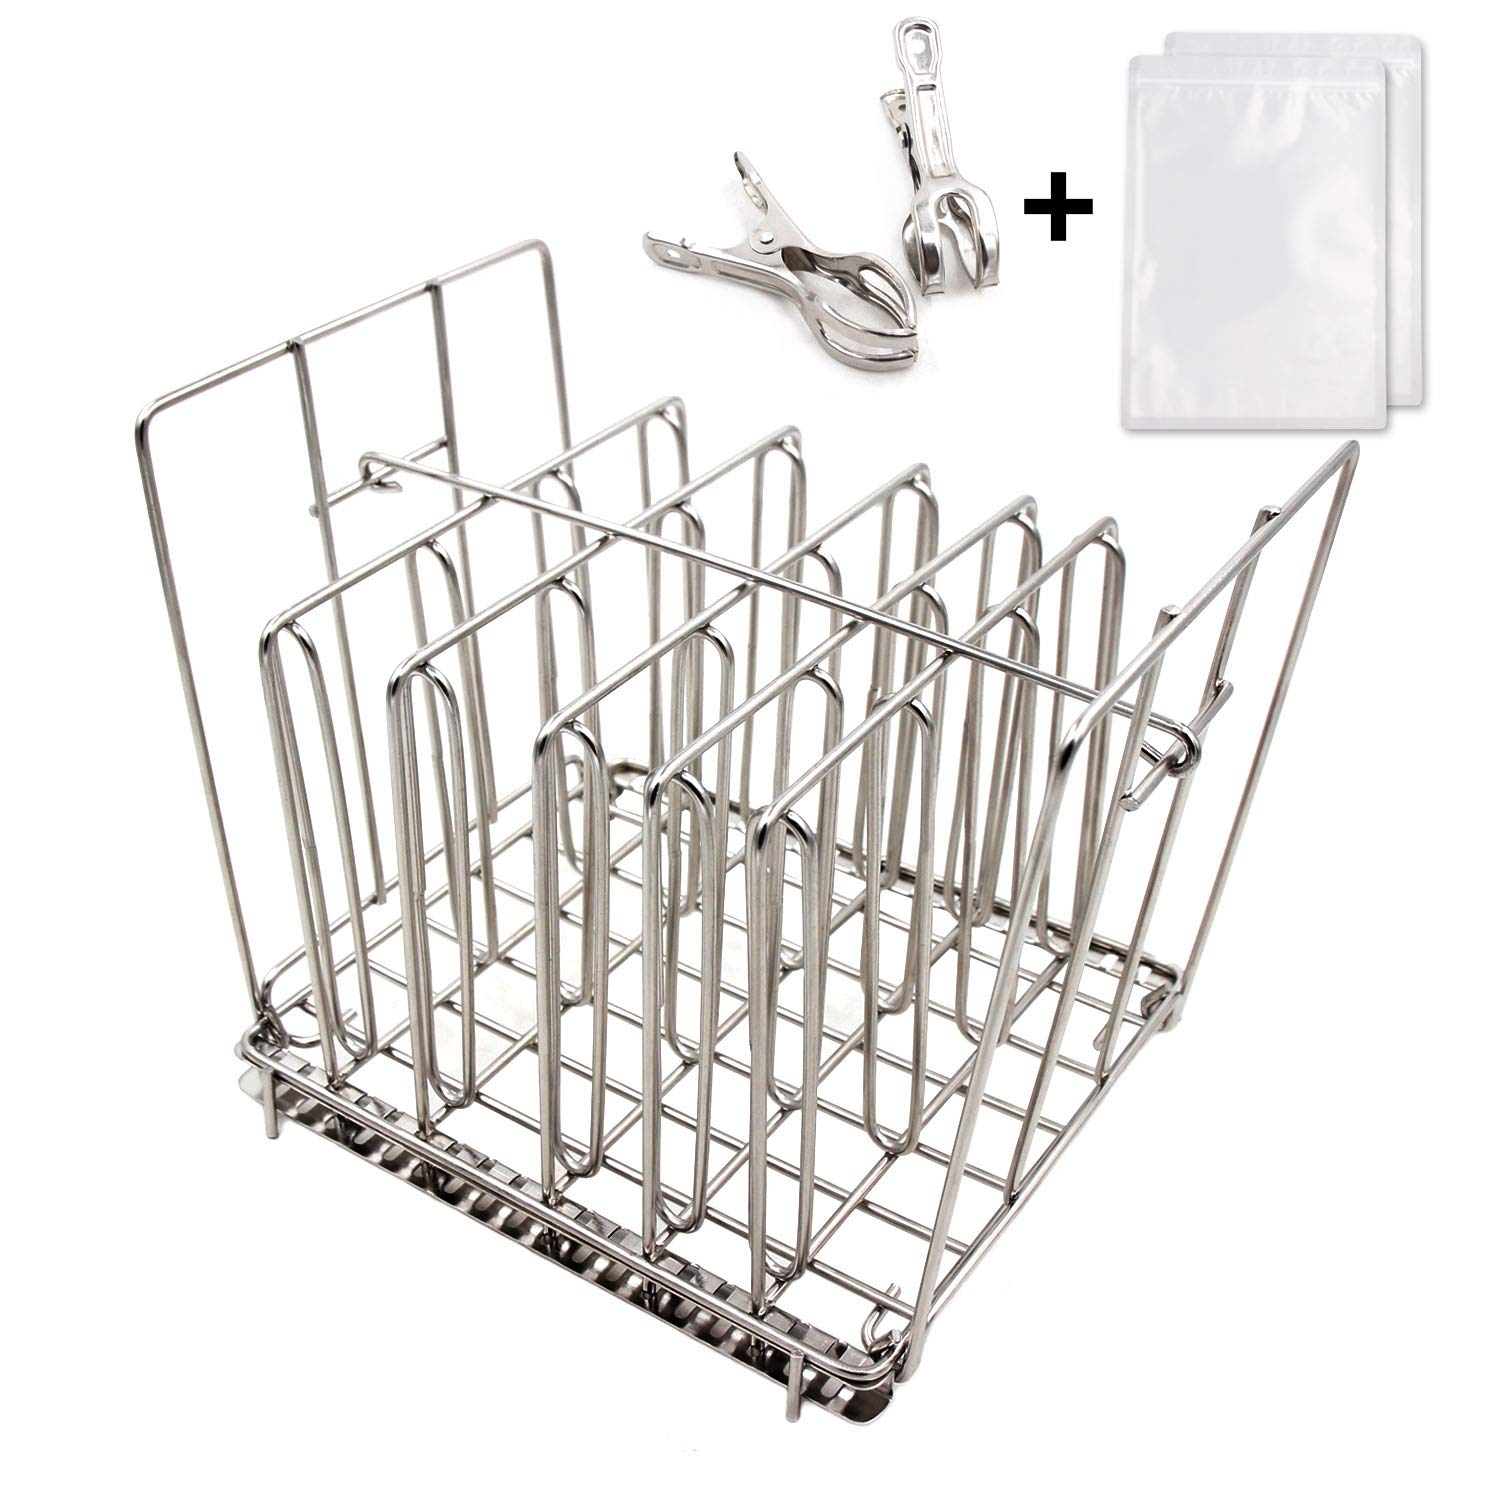 Sous Vide Rack Stainless Steel-Square 7.5 x 6.5 Inch- with Adjustable No-Float Top Bar, Collapsible Compact Design,Ensures even and Quick warming with Sous Vide Cooking,Fits Most 12qt Containers